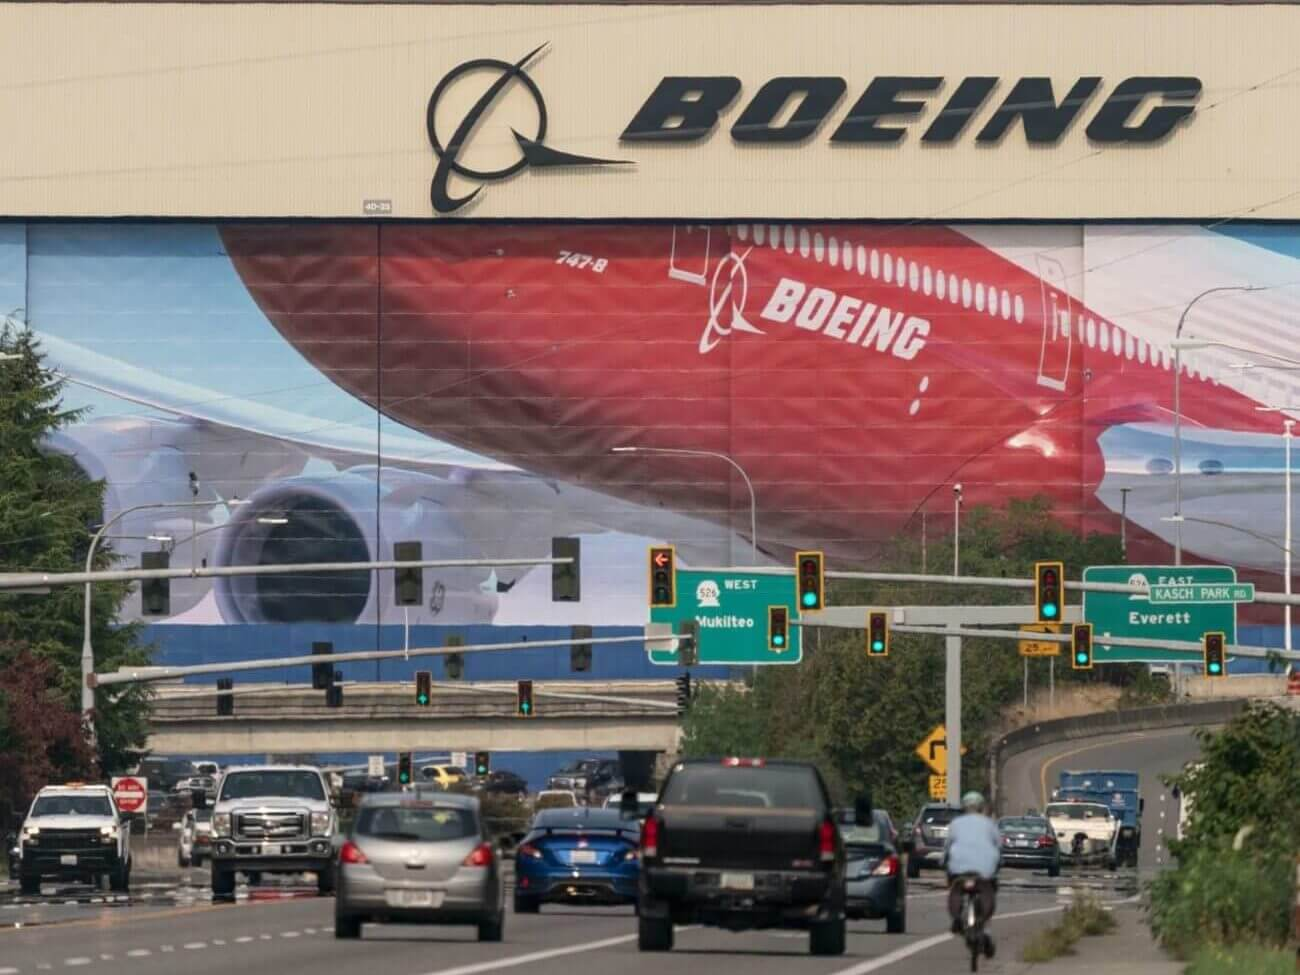 Boeing Is the Most contemporary Firm to Regain away a Adversarial Trade Ambiance